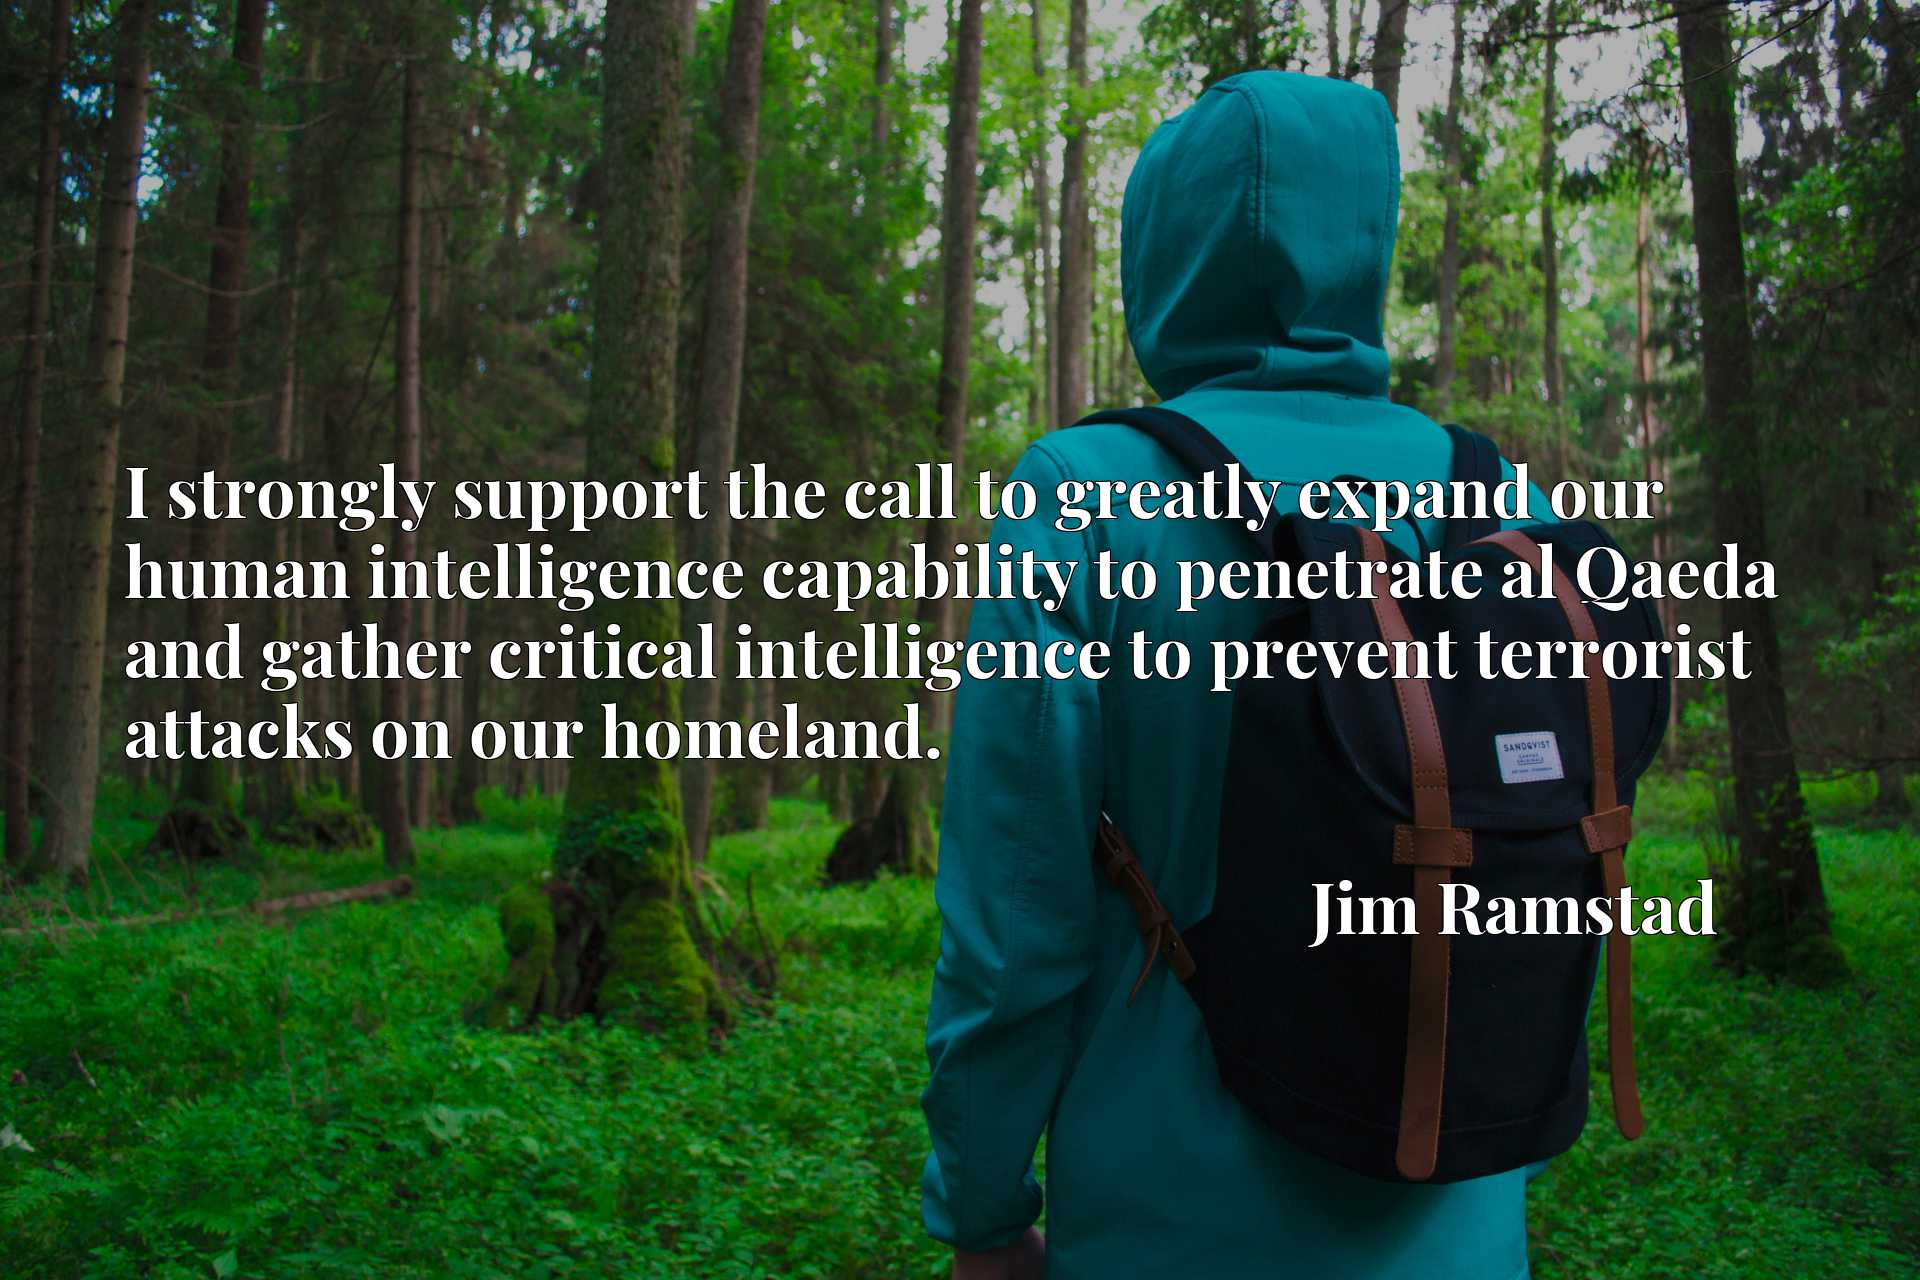 I strongly support the call to greatly expand our human intelligence capability to penetrate al Qaeda and gather critical intelligence to prevent terrorist attacks on our homeland.